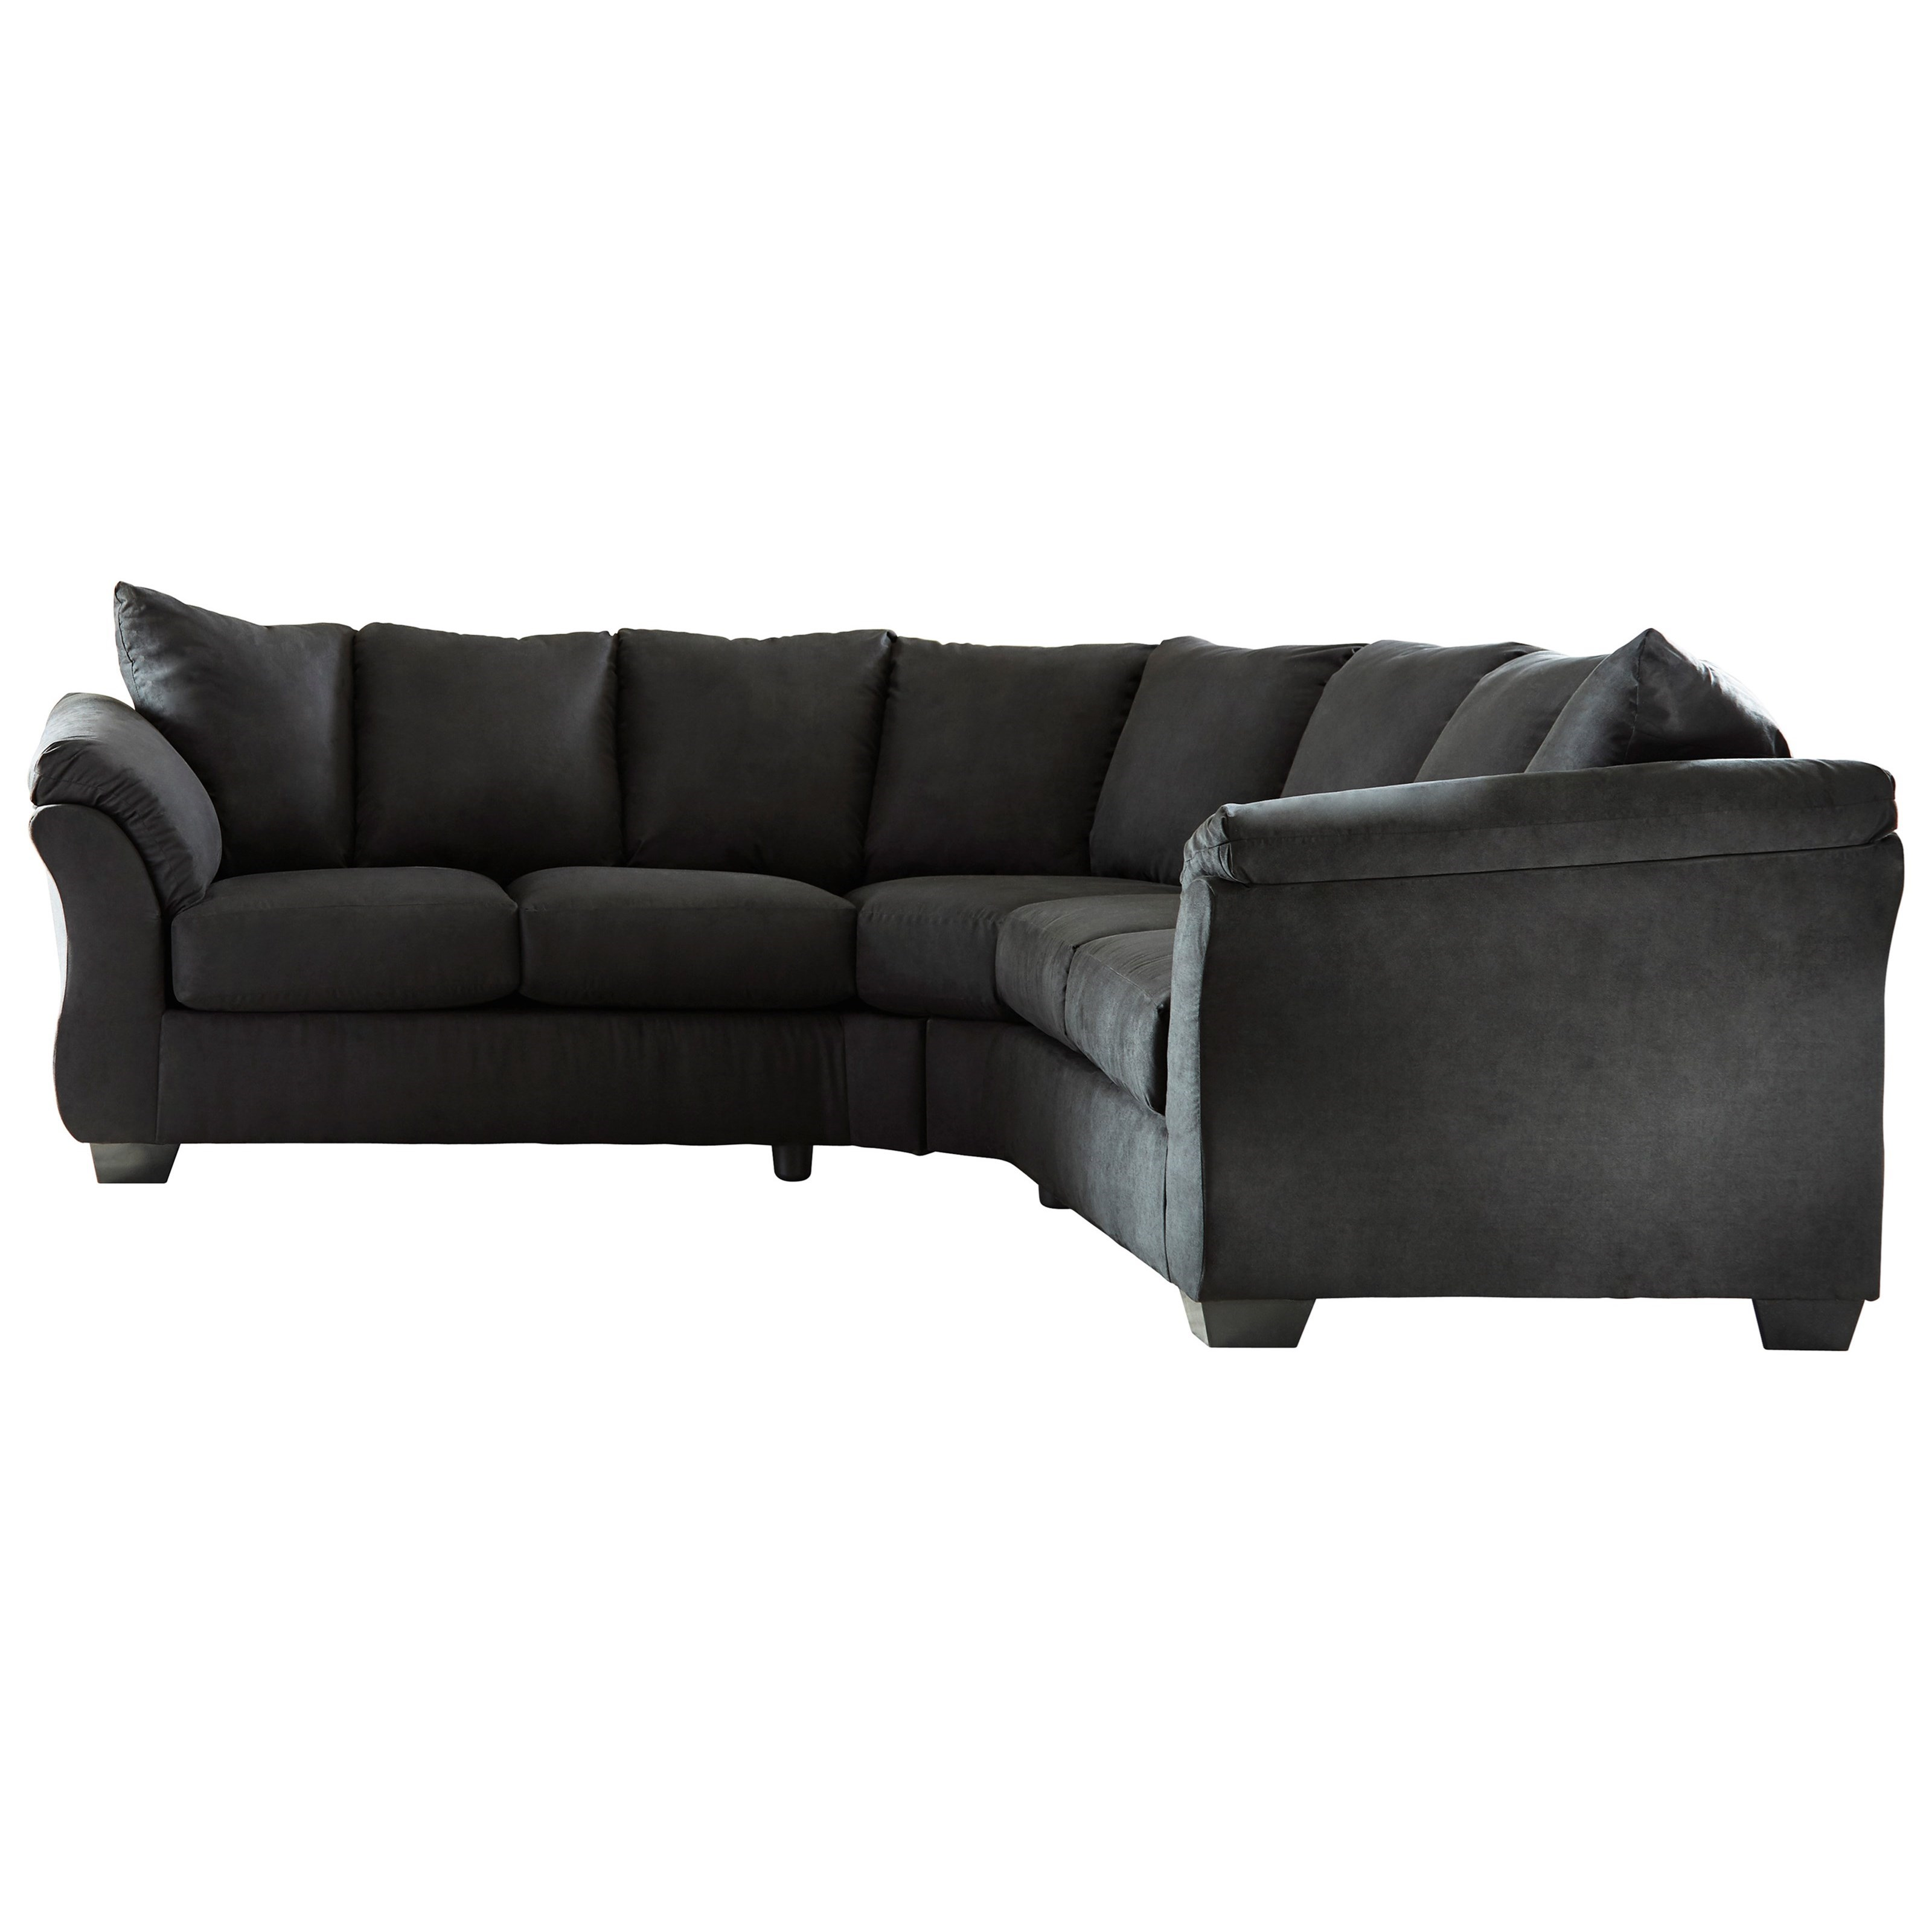 Signature Design by Ashley Darcy - Black Sectional Sofa - Item Number 7500855+56  sc 1 st  Wayside Furniture : black sectional couch - Sectionals, Sofas & Couches